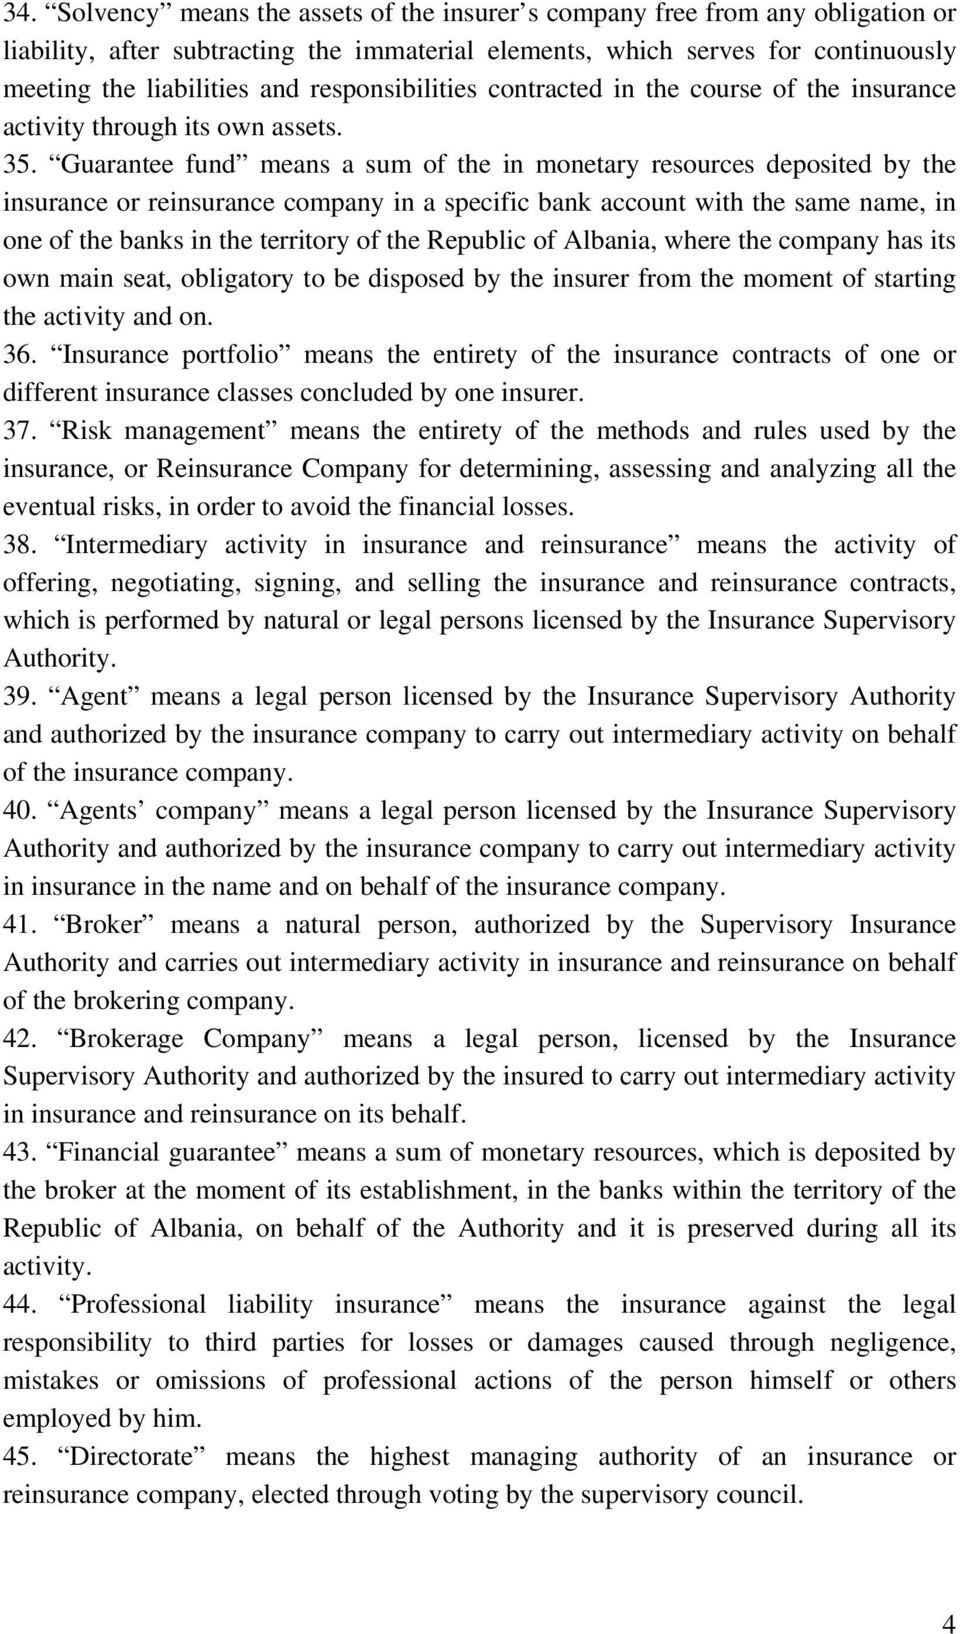 Guarantee fund means a sum of the in monetary resources deposited by the insurance or reinsurance company in a specific bank account with the same name, in one of the banks in the territory of the